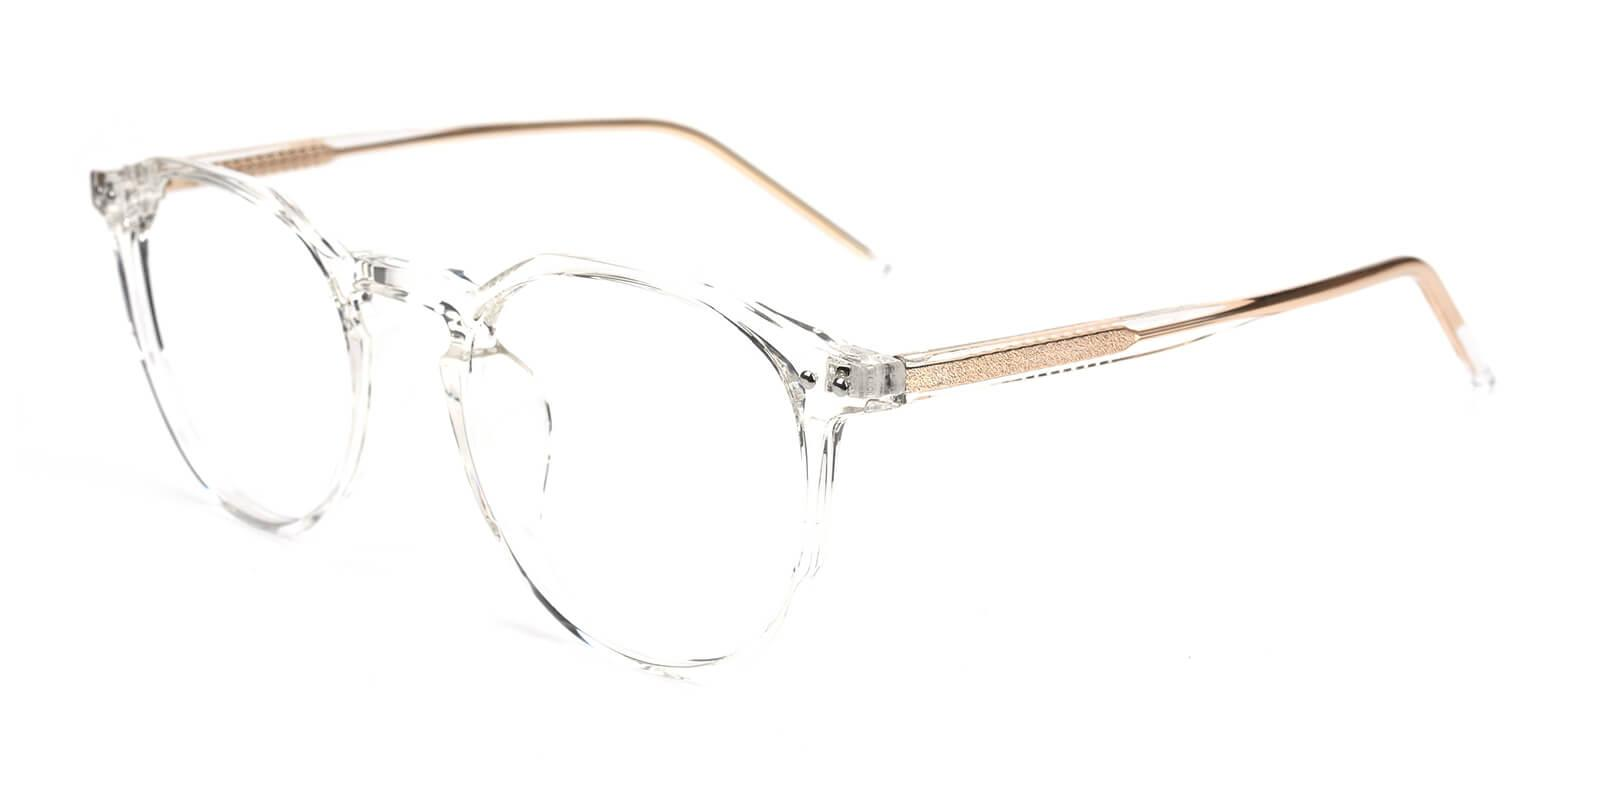 Mila-Translucent-Round-Acetate-Eyeglasses-additional1